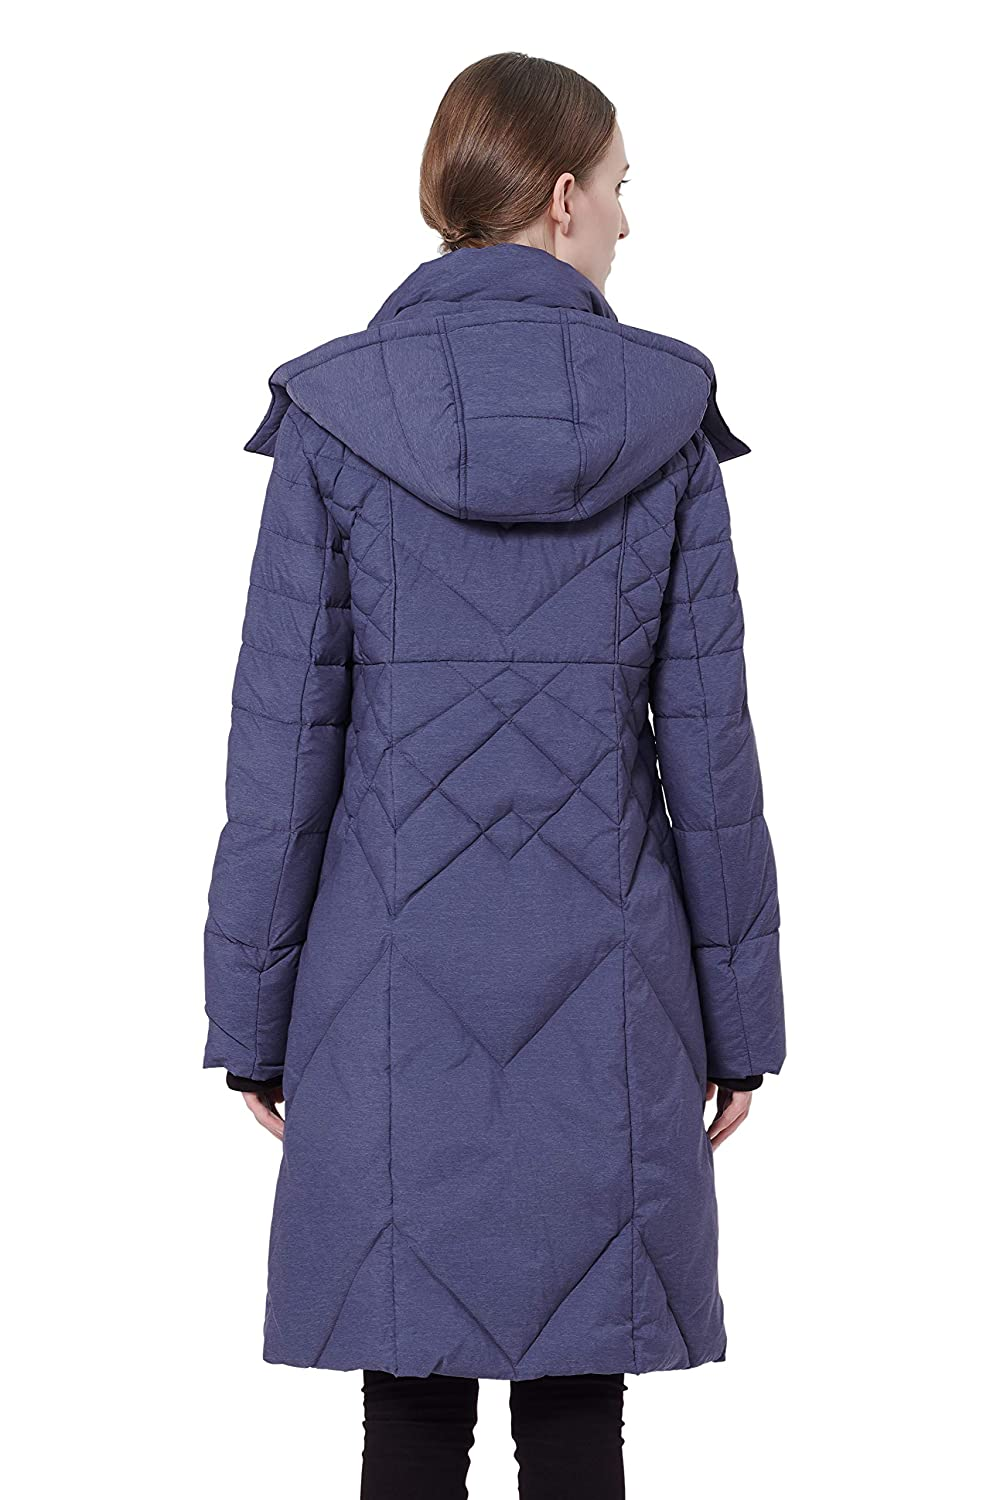 Orolay Womens Thickened Down Jacket with Hood YRF6006F